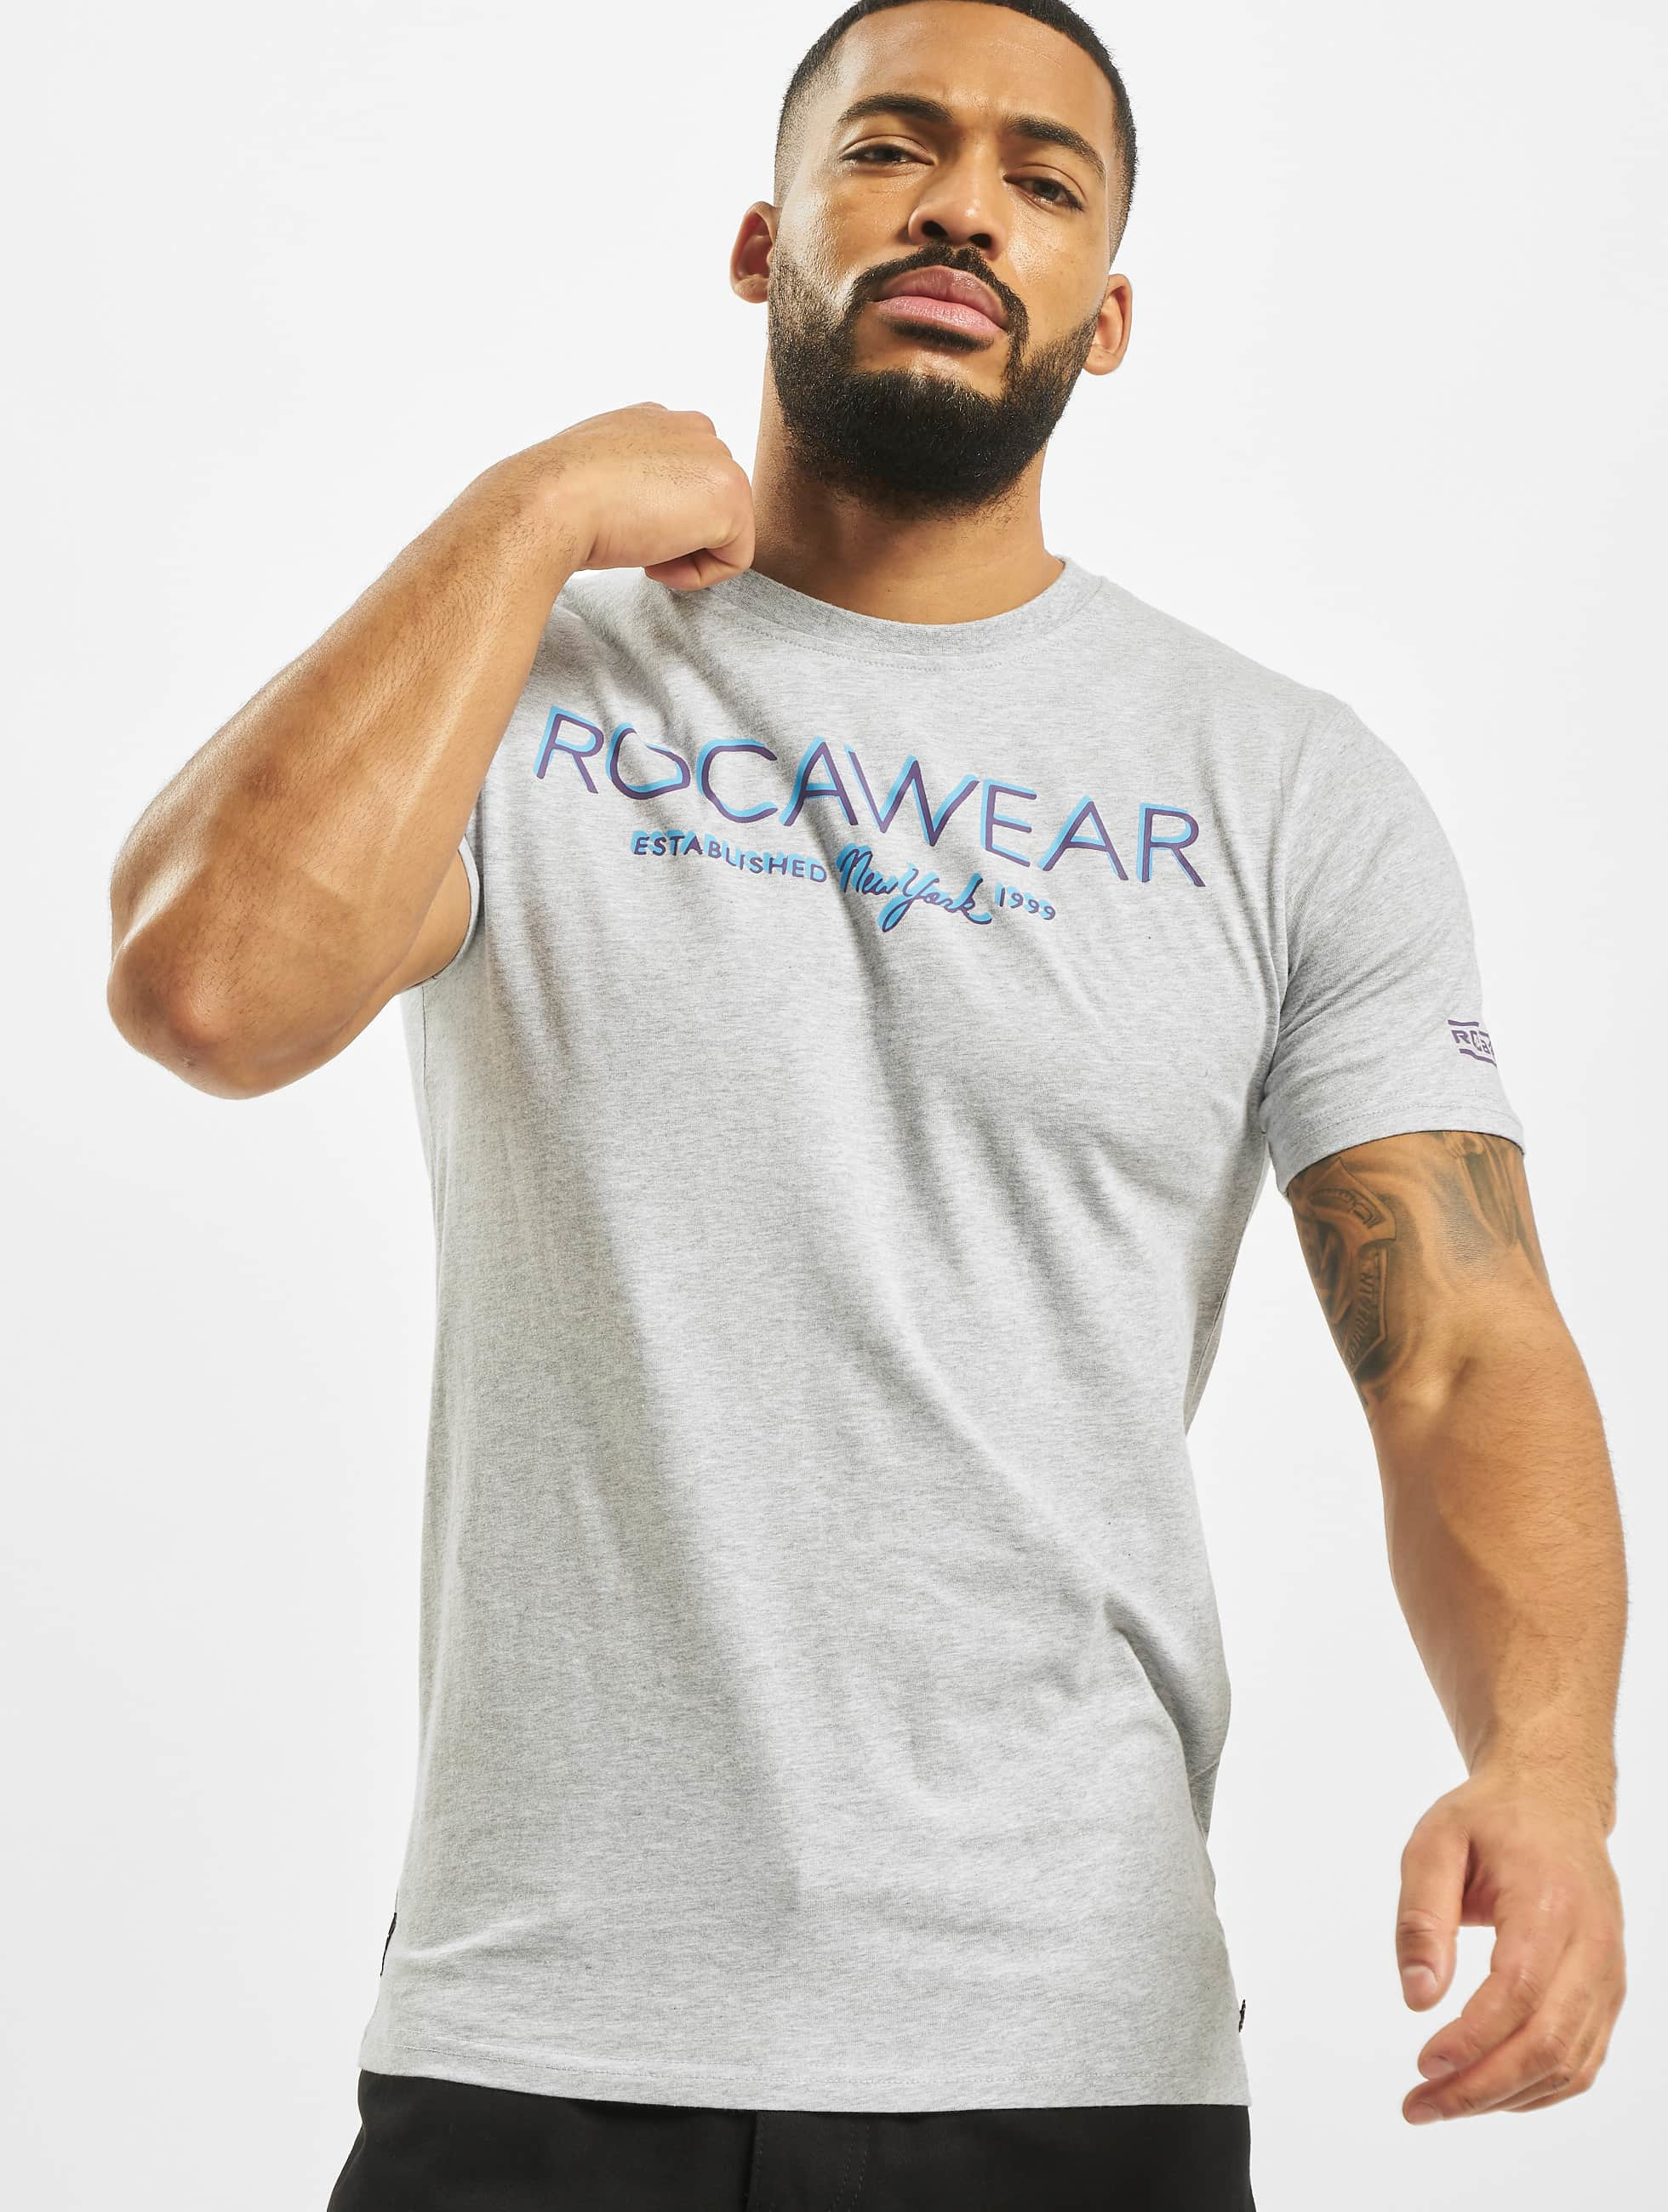 Rocawear / T-Shirt Neon in grey L